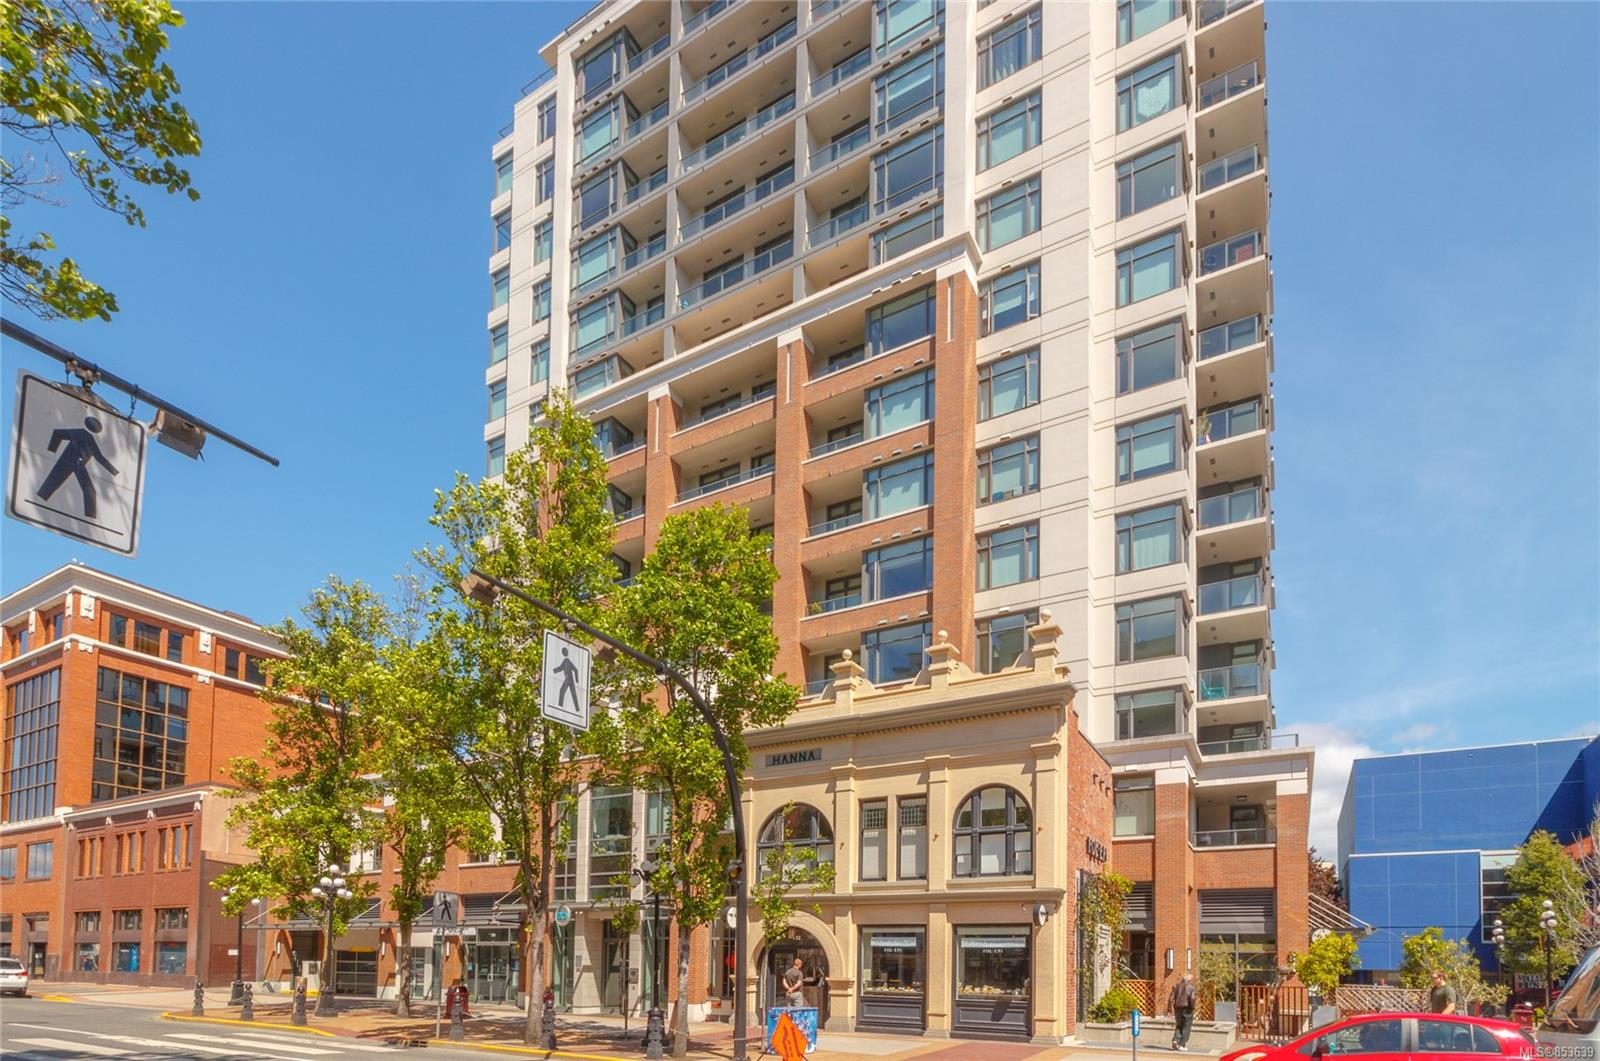 FEATURED LISTING: 403 - 728 Yates St